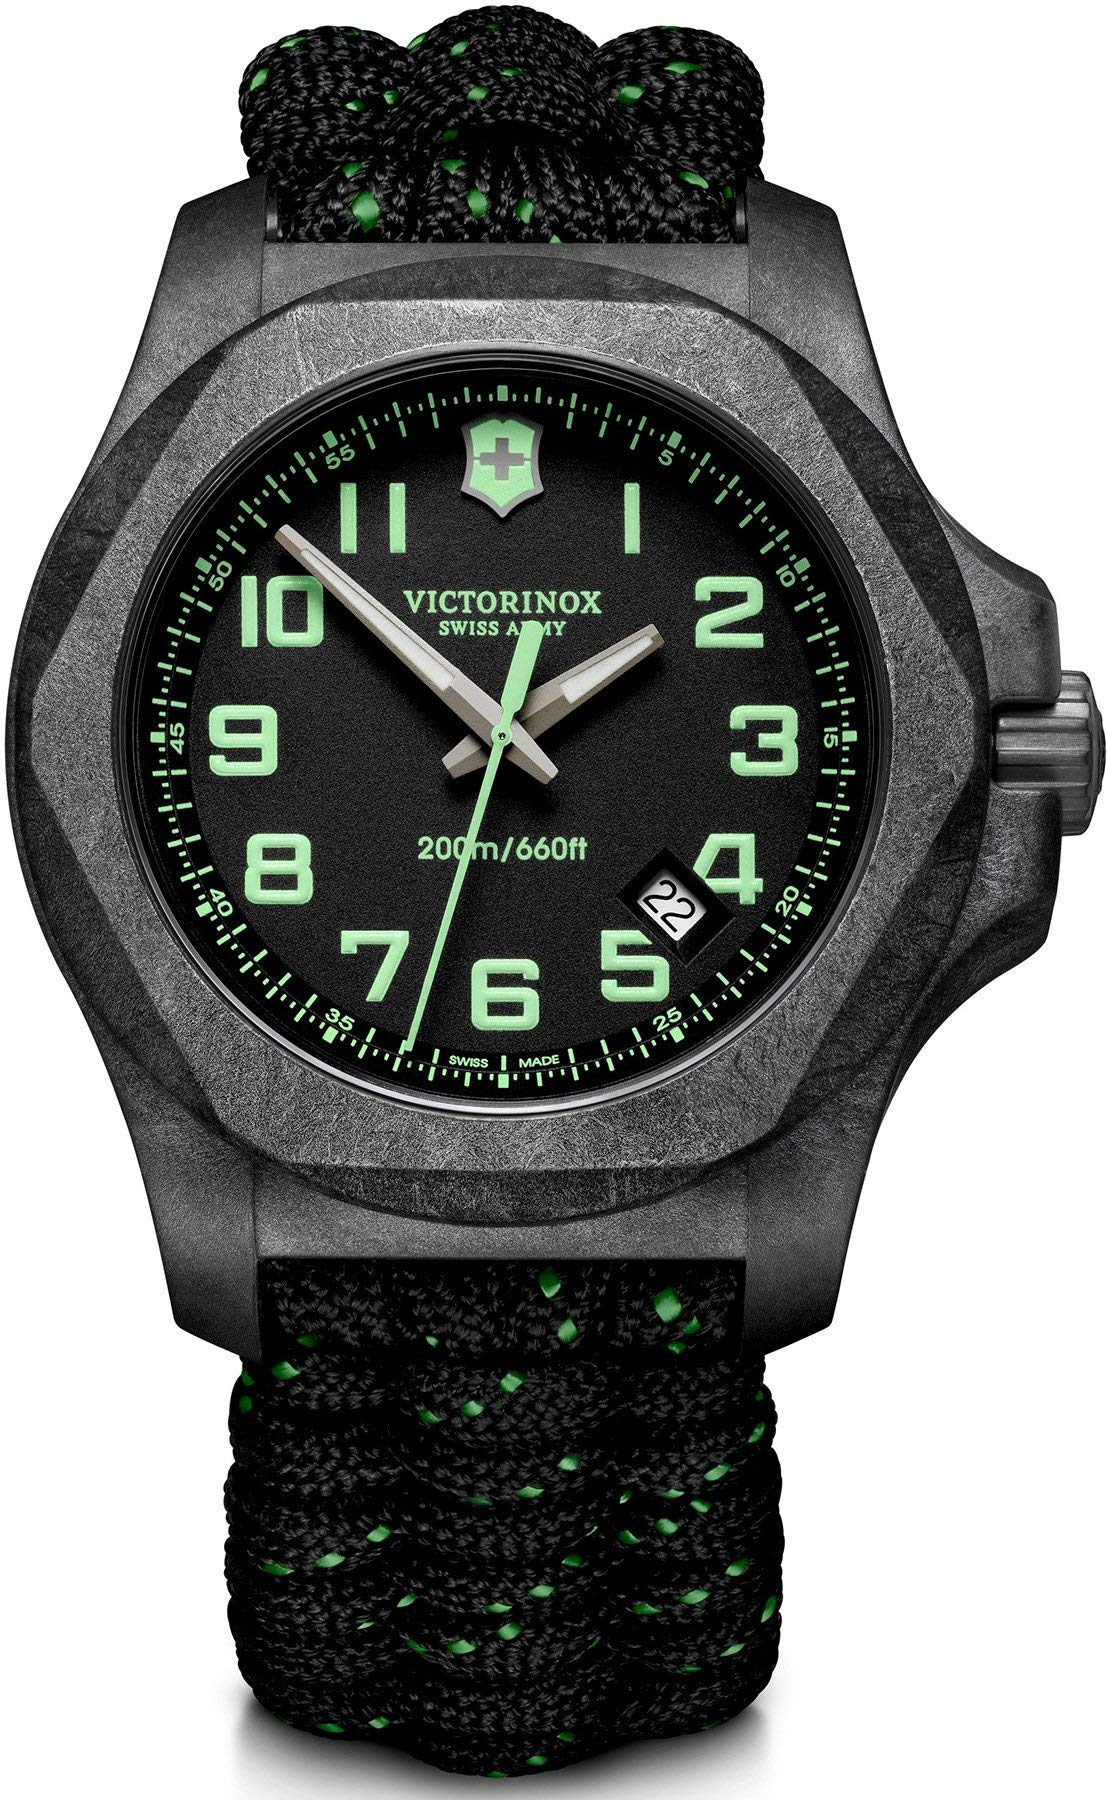 Victorinox I.N.O.X. Carbon Quartz Watch Carbon